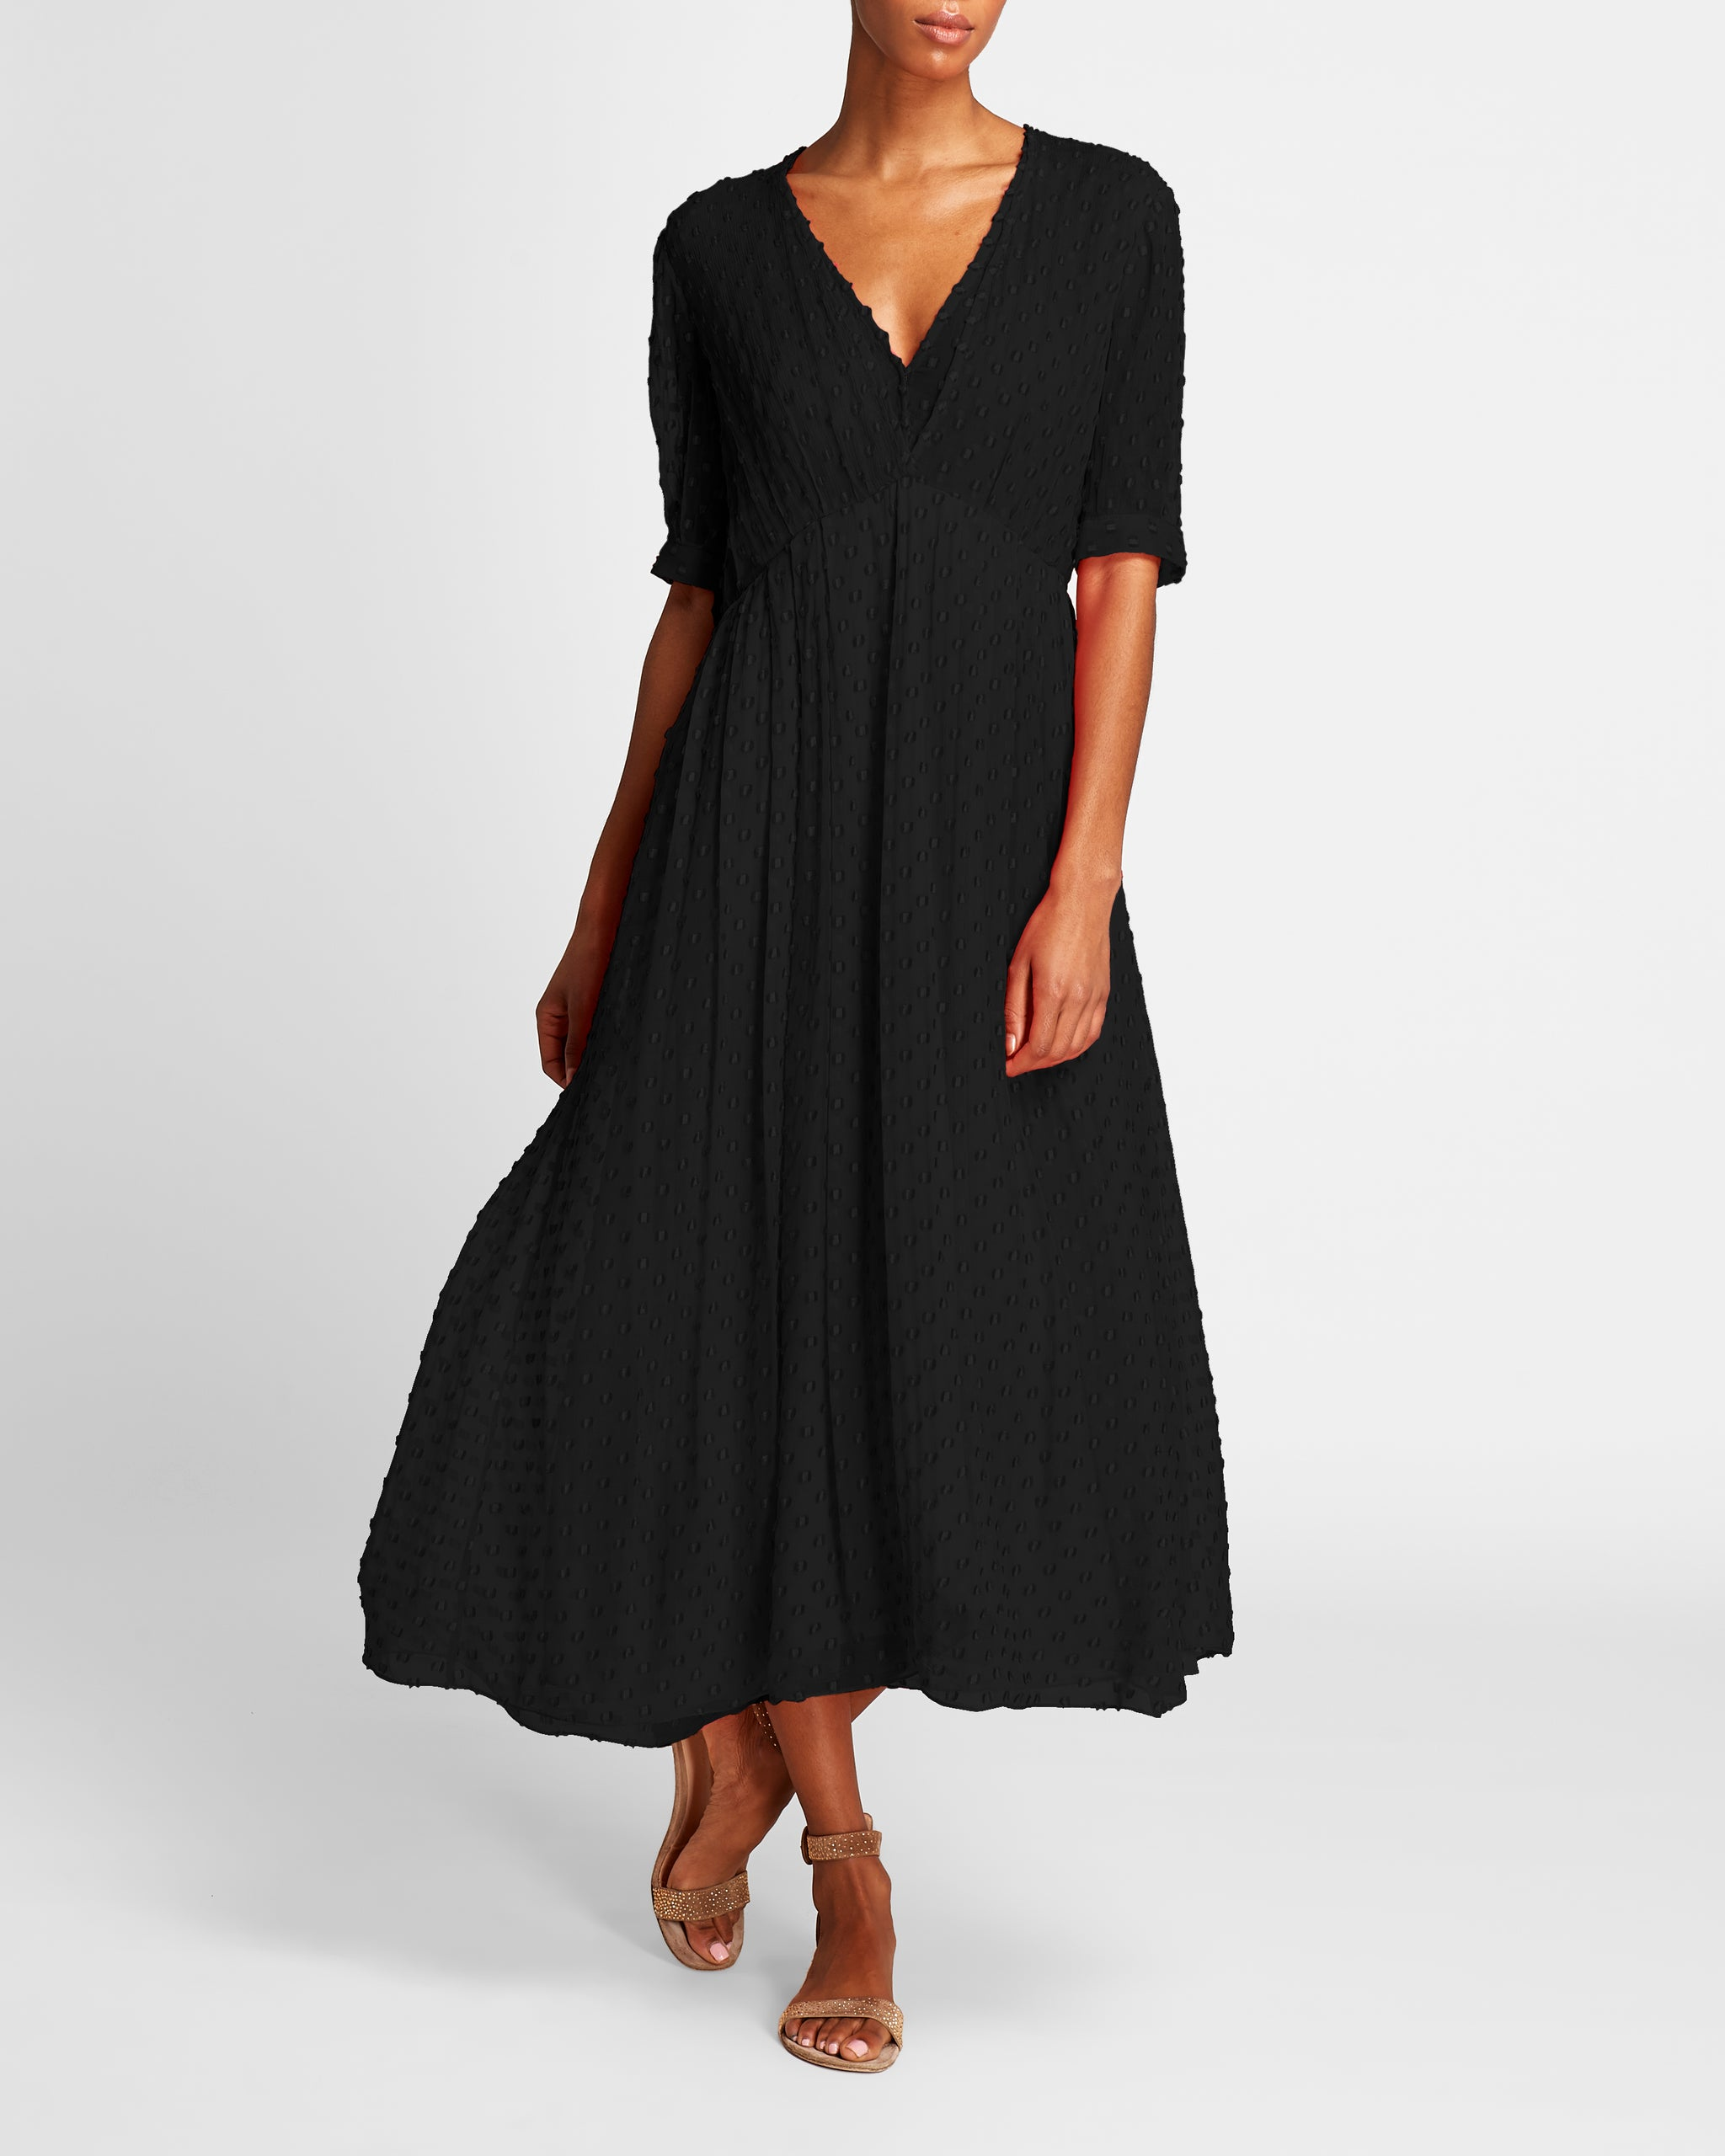 The Ivy Dress | Black